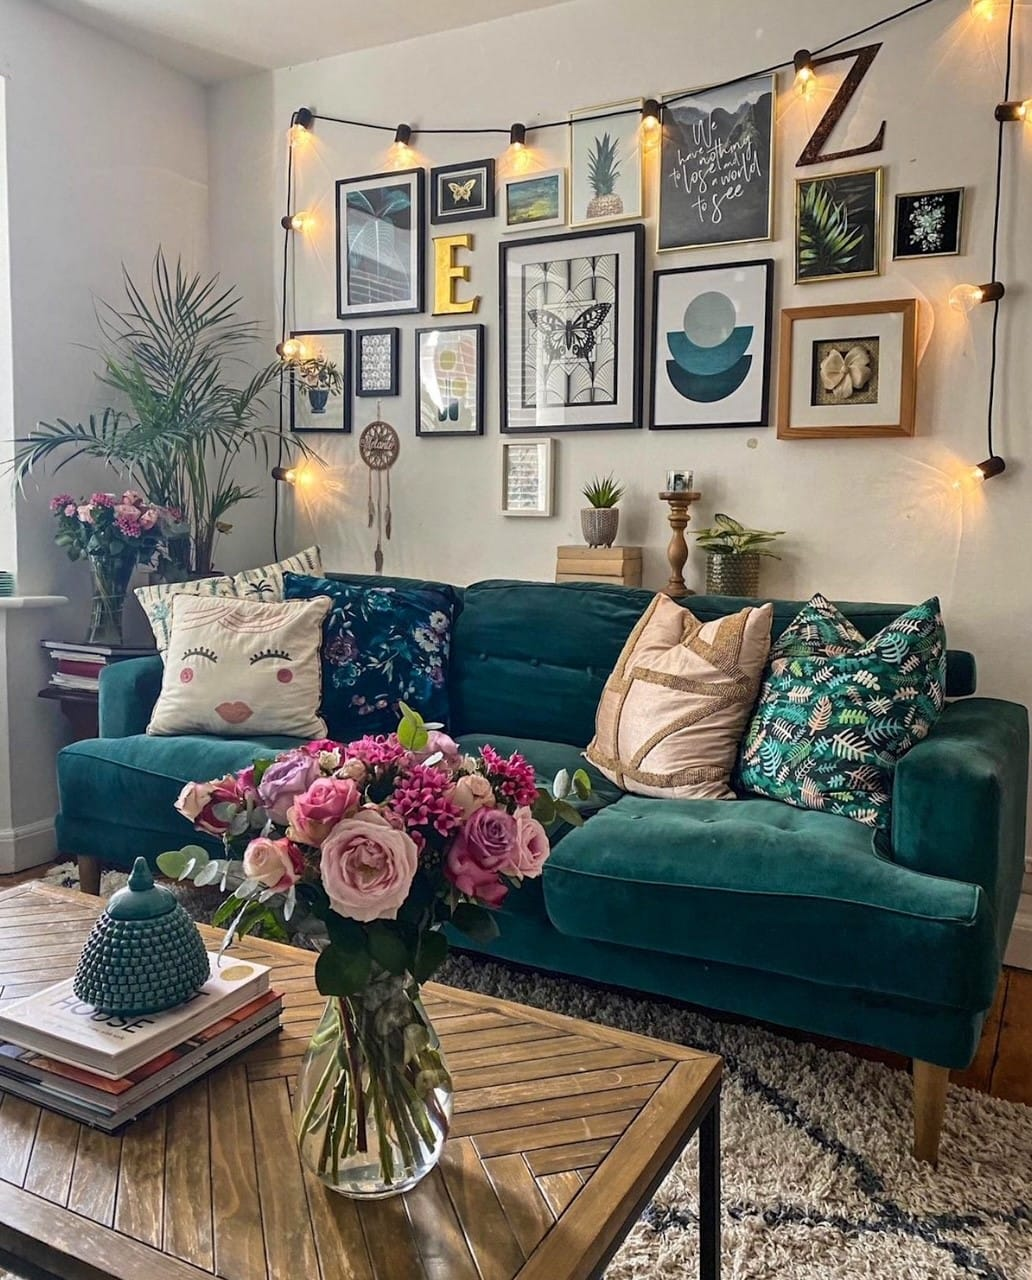 green velvet sofa in the living room with pink flowers, industrial style coffee table and gallery wall